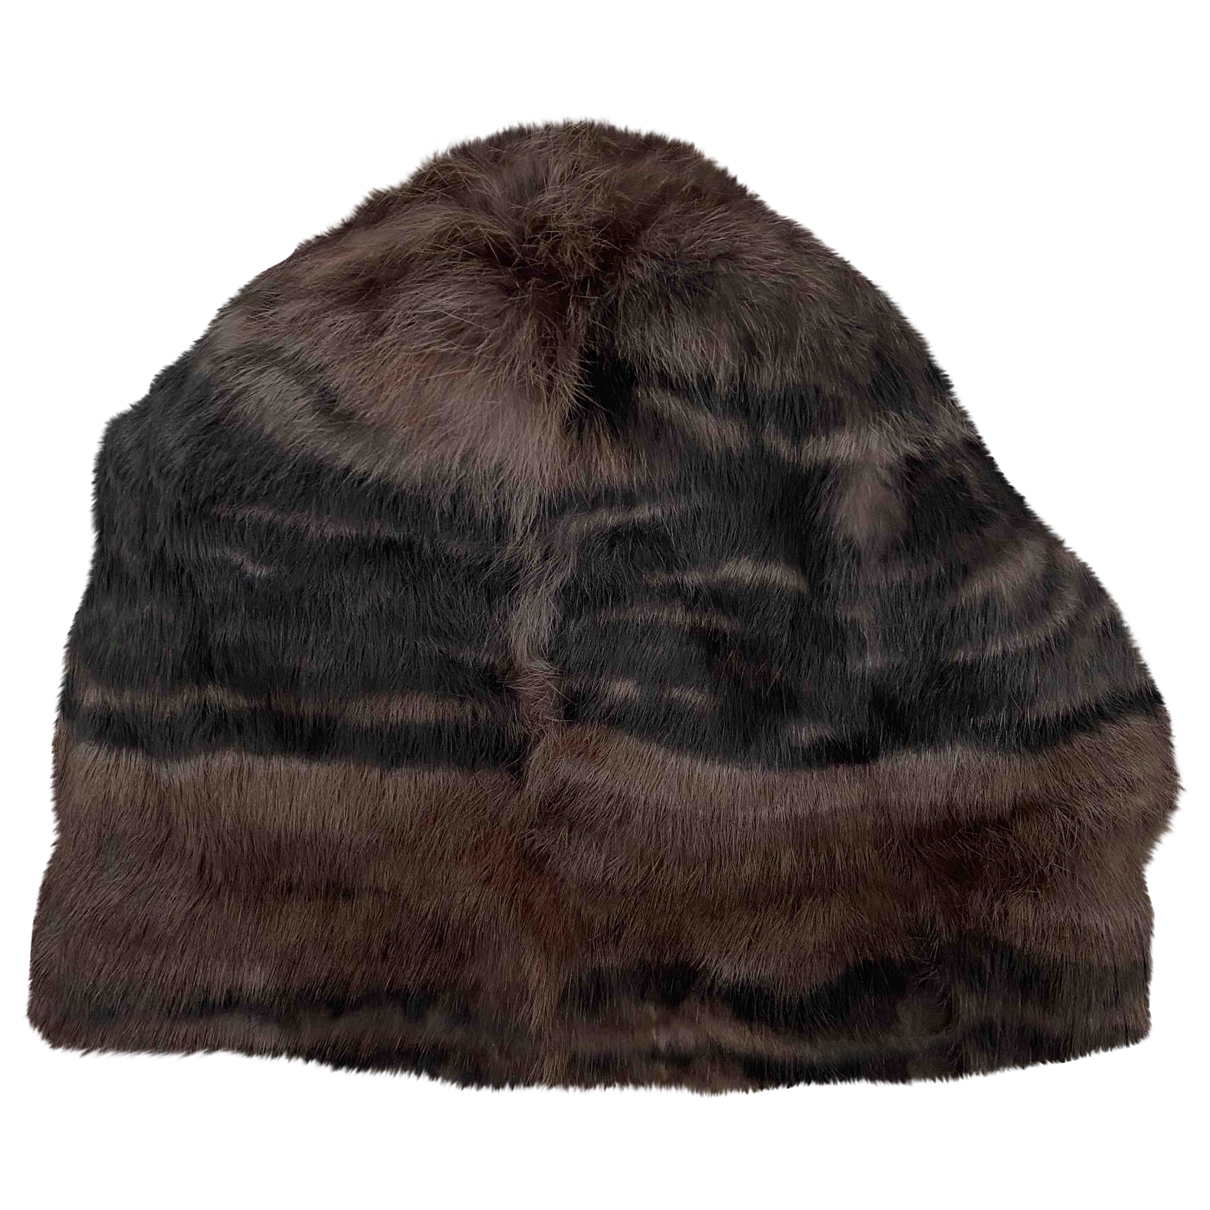 Danielapi \N Brown Rabbit hat for Women M International